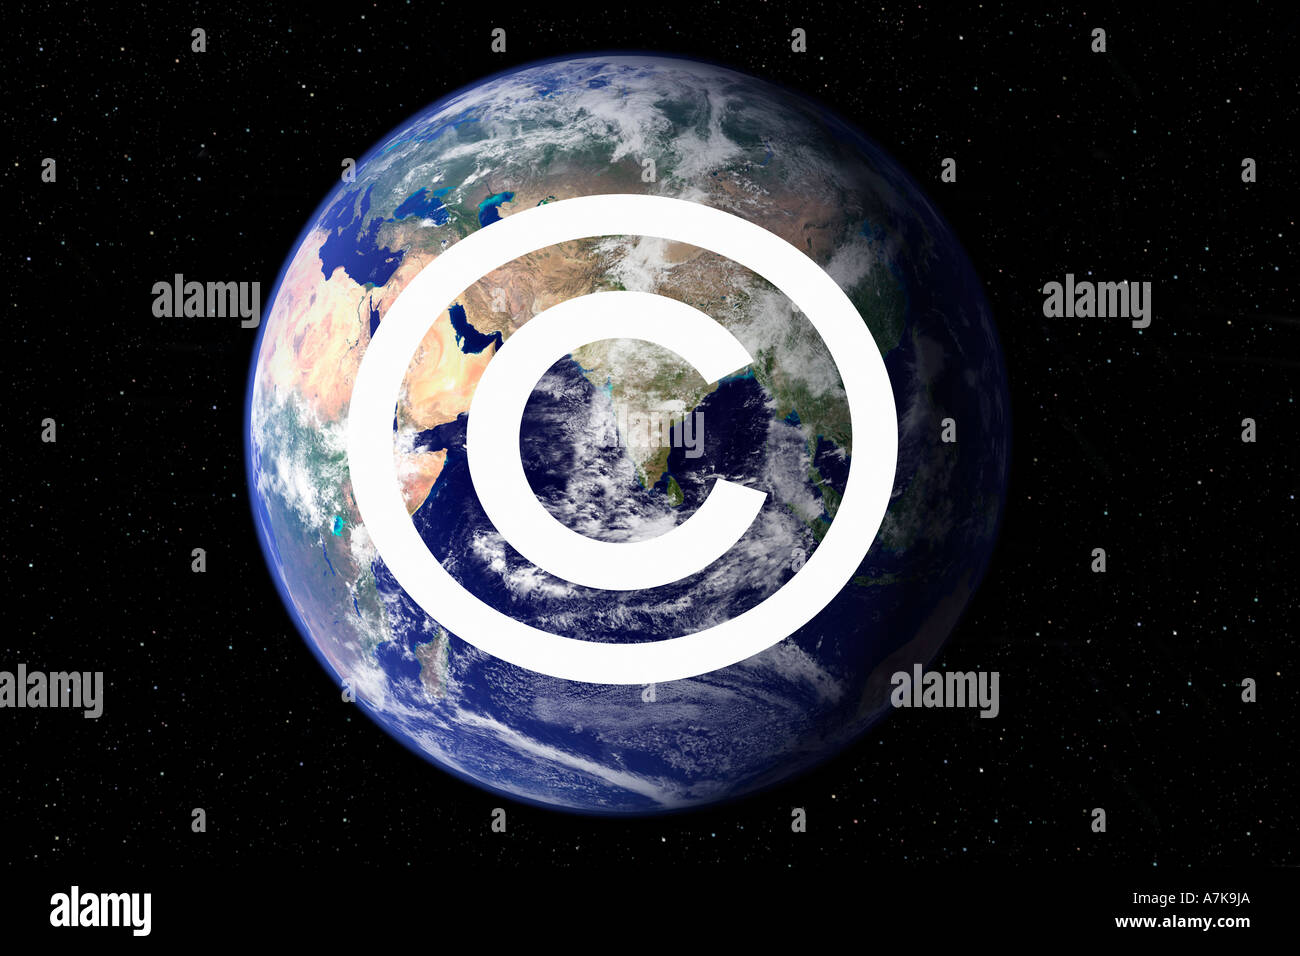 Concept image of the awareness of awareness of Copyright symbol now used to fight Piracy. Stock Photo